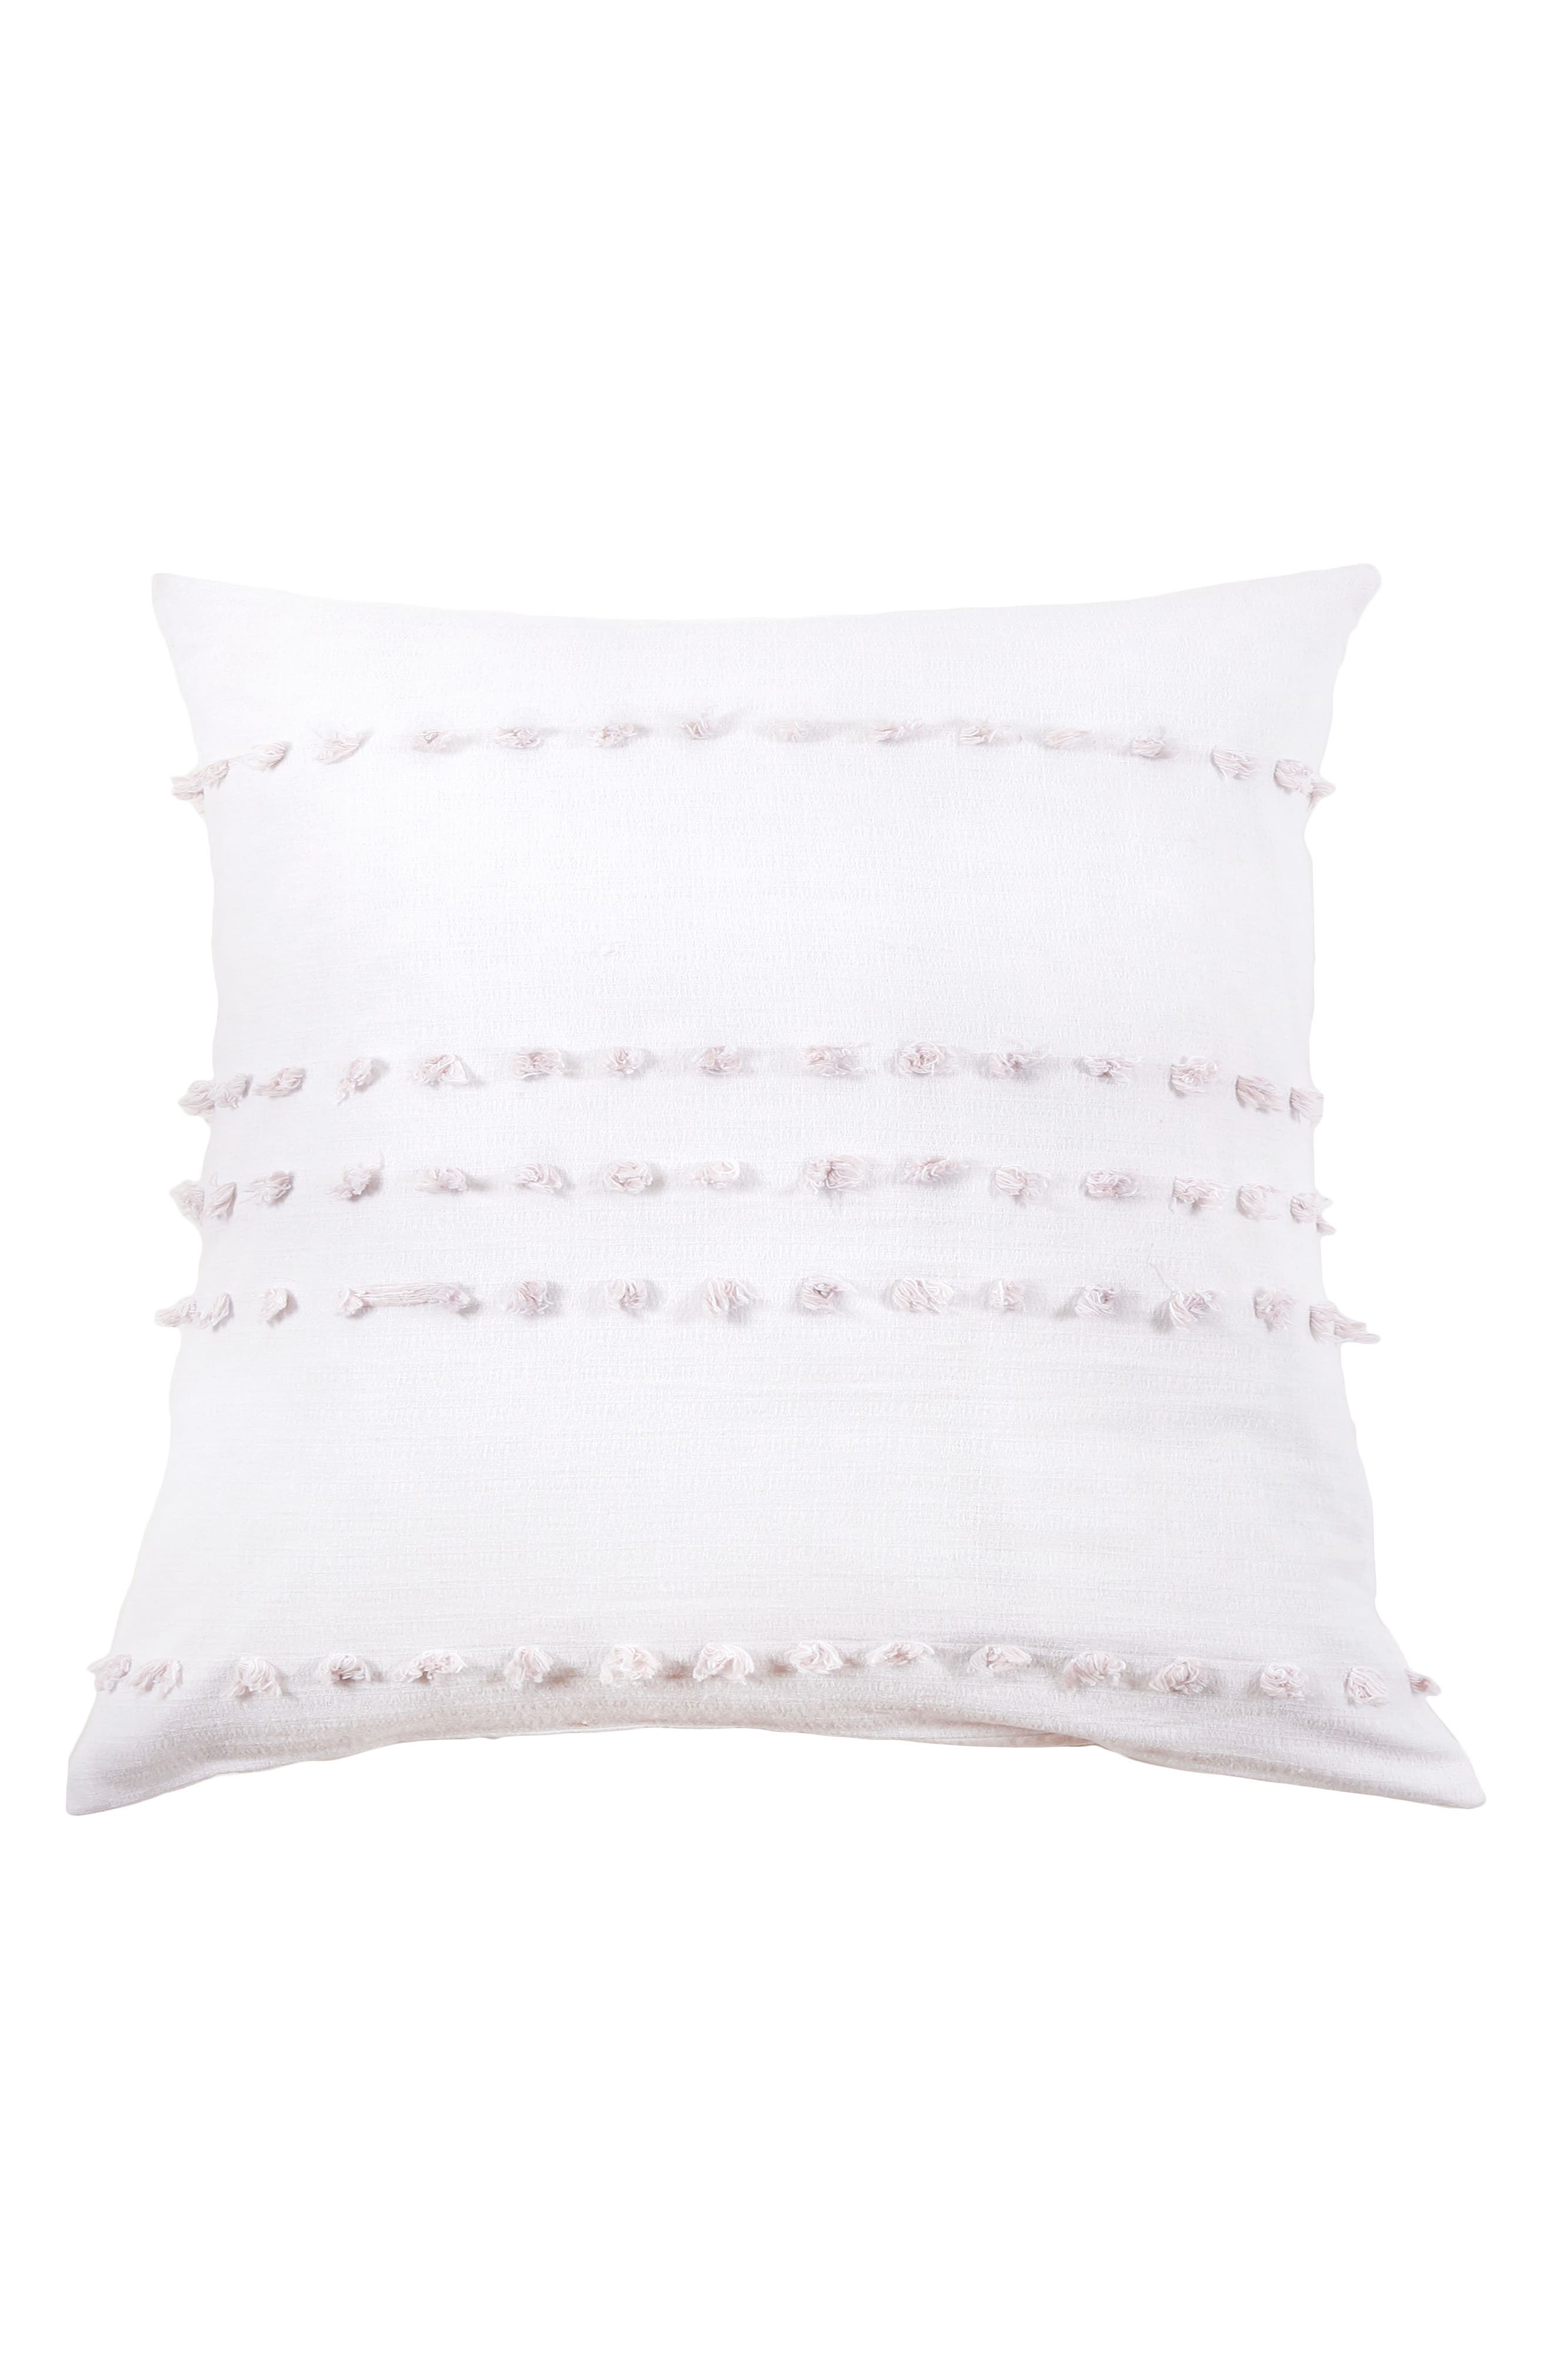 Poppy Accent Pillow,                             Main thumbnail 1, color,                             WHITE/ BLUSH